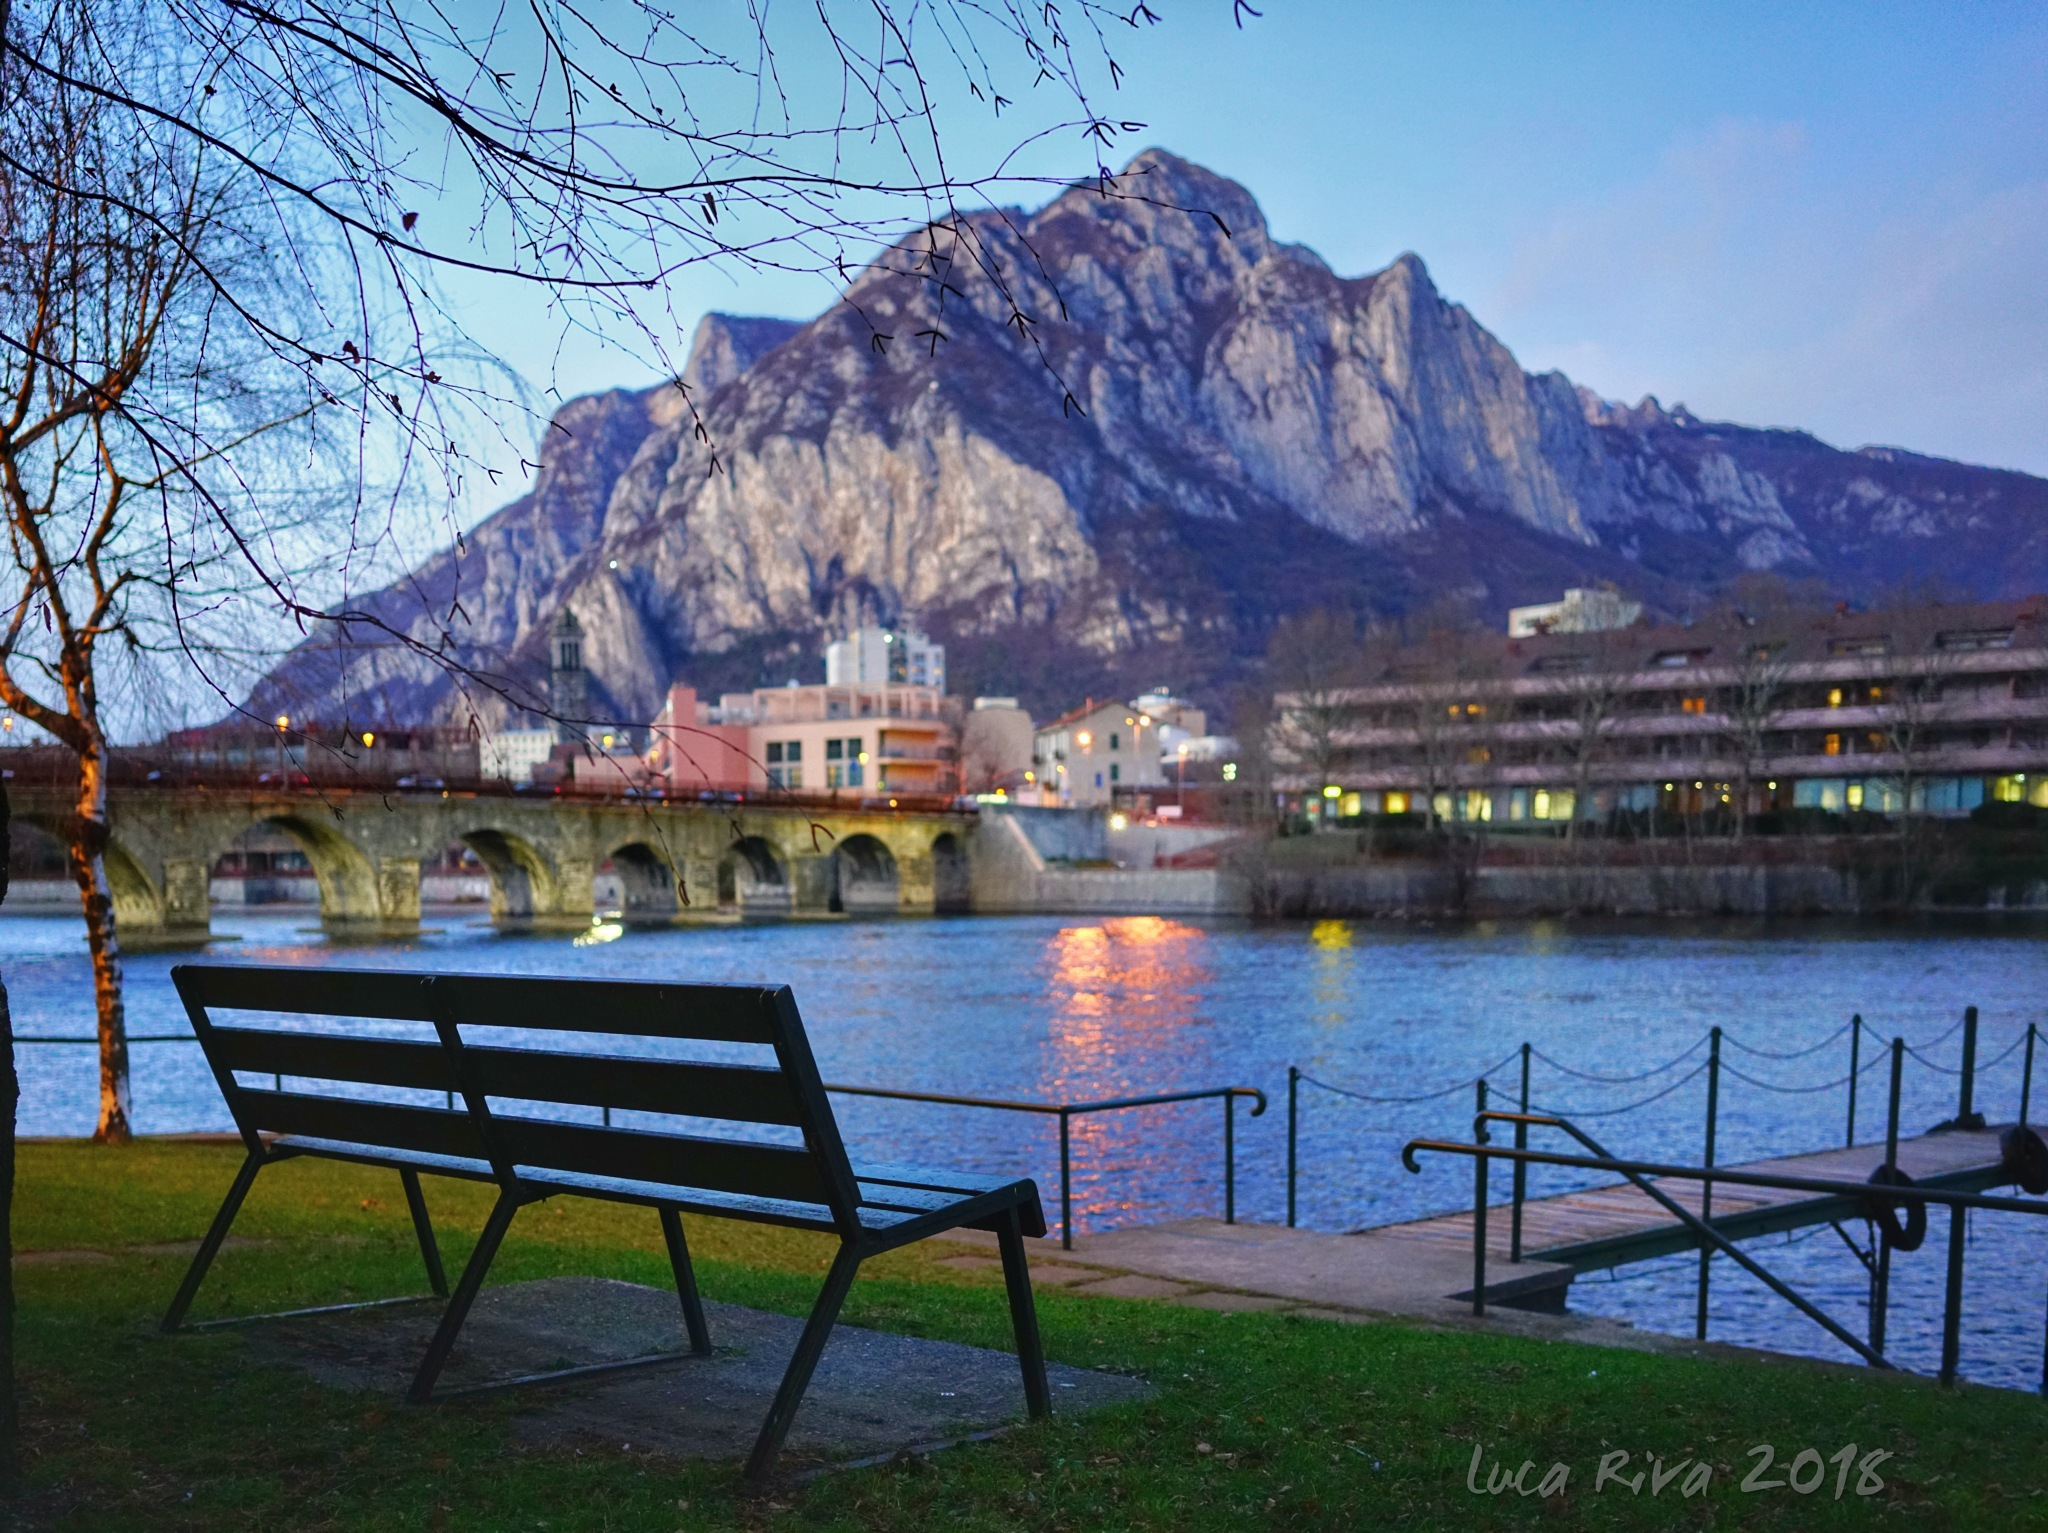 The bench by Luca Riva